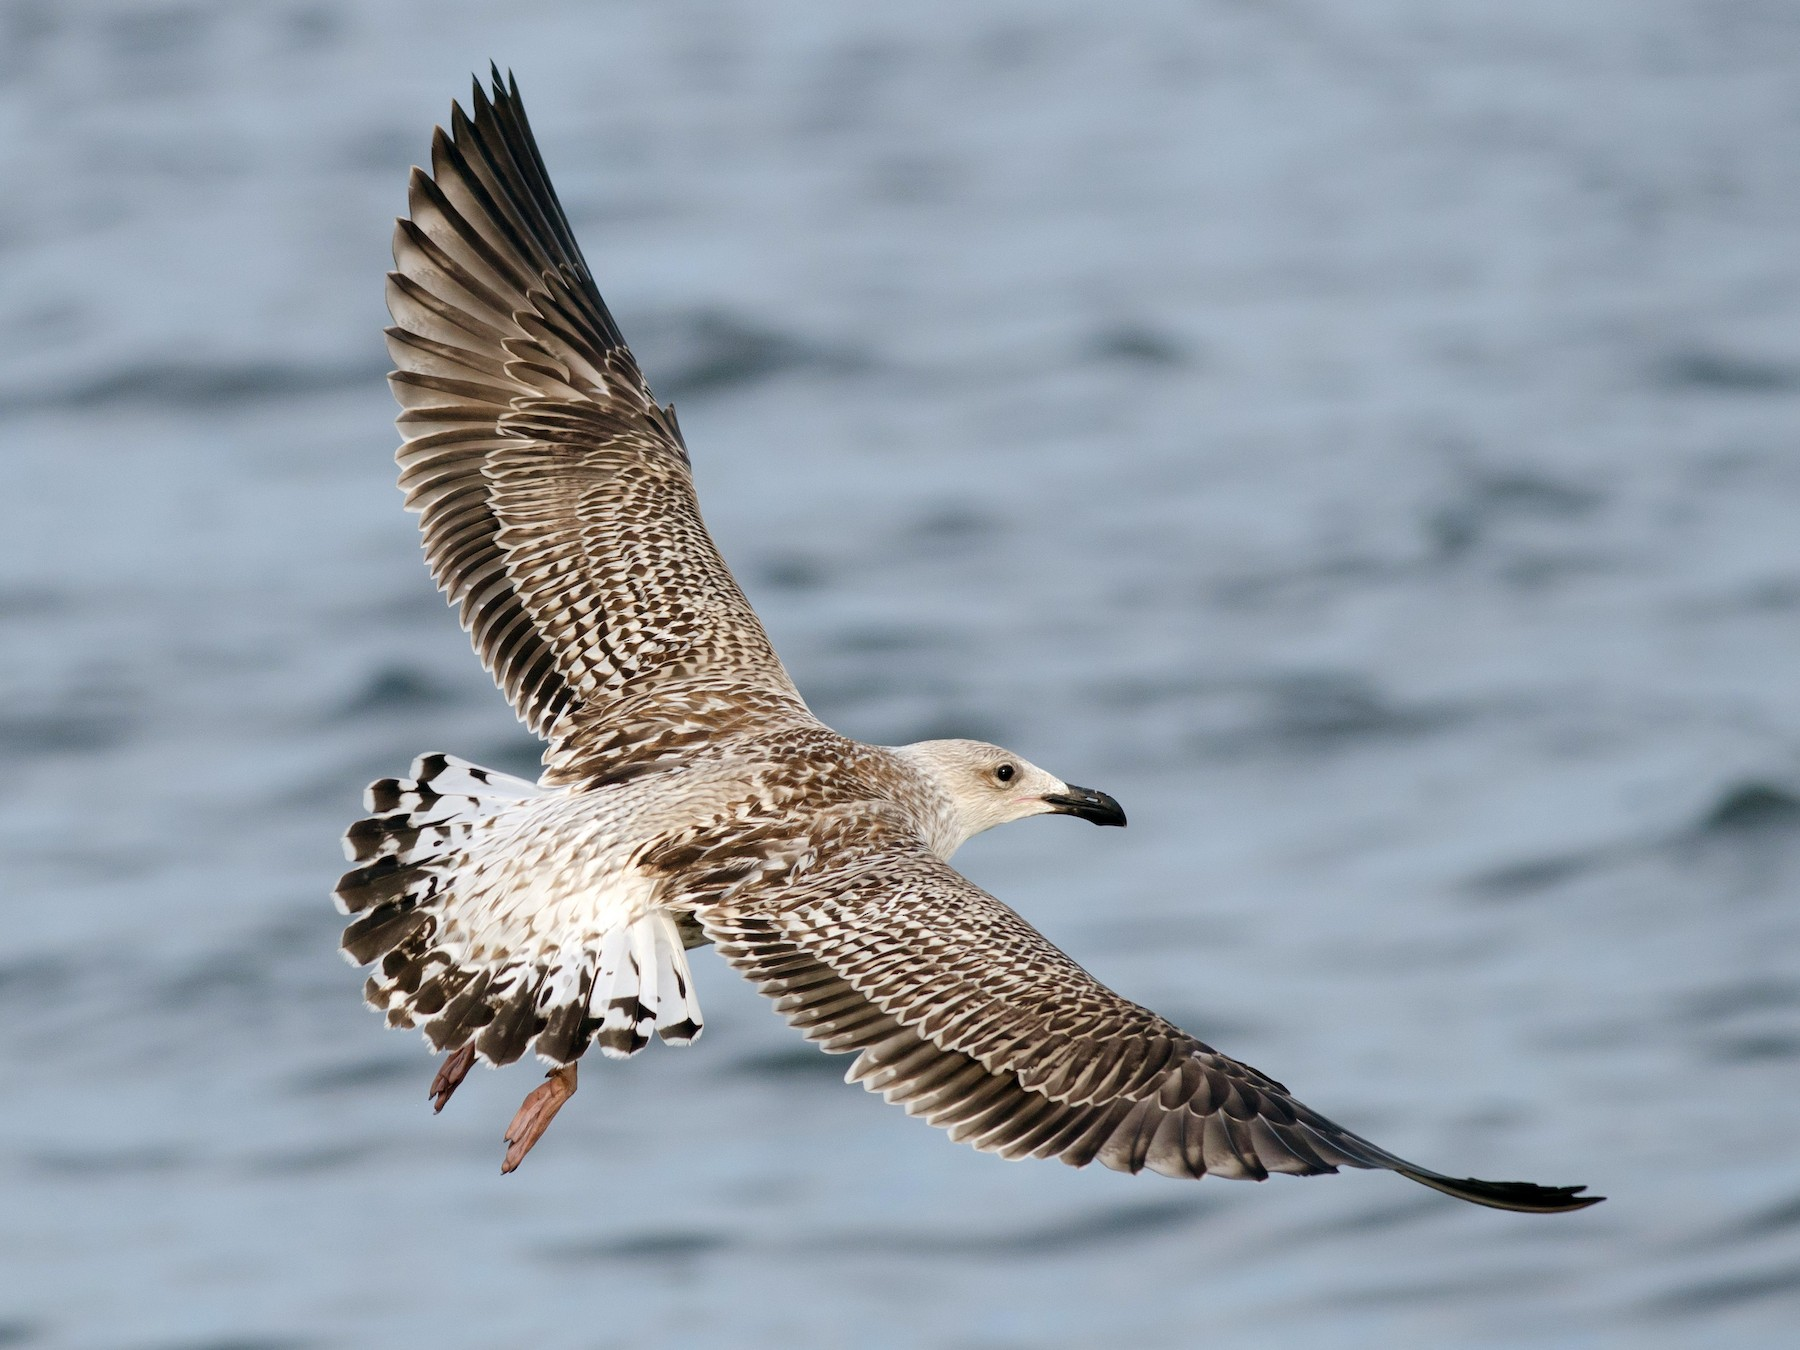 Great Black-backed Gull - Alix d'Entremont